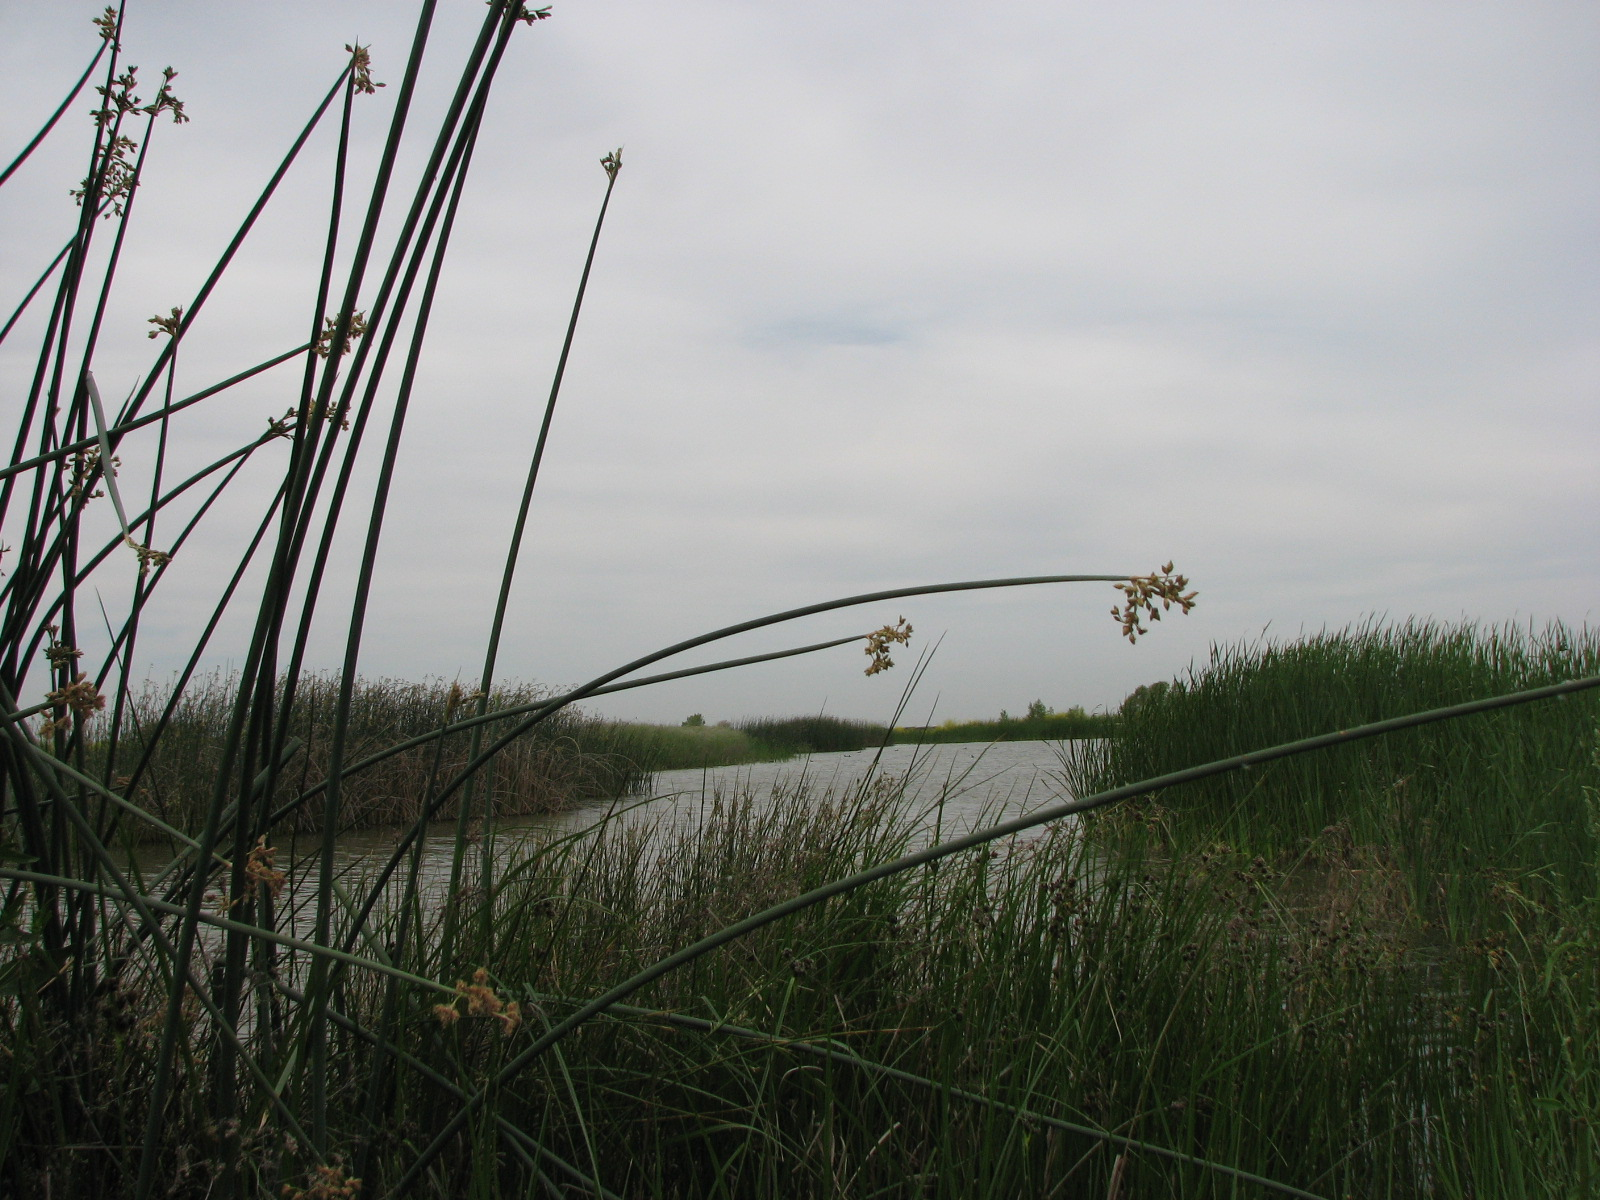 wetland landscape shot with reeds, water, and cloudy sky